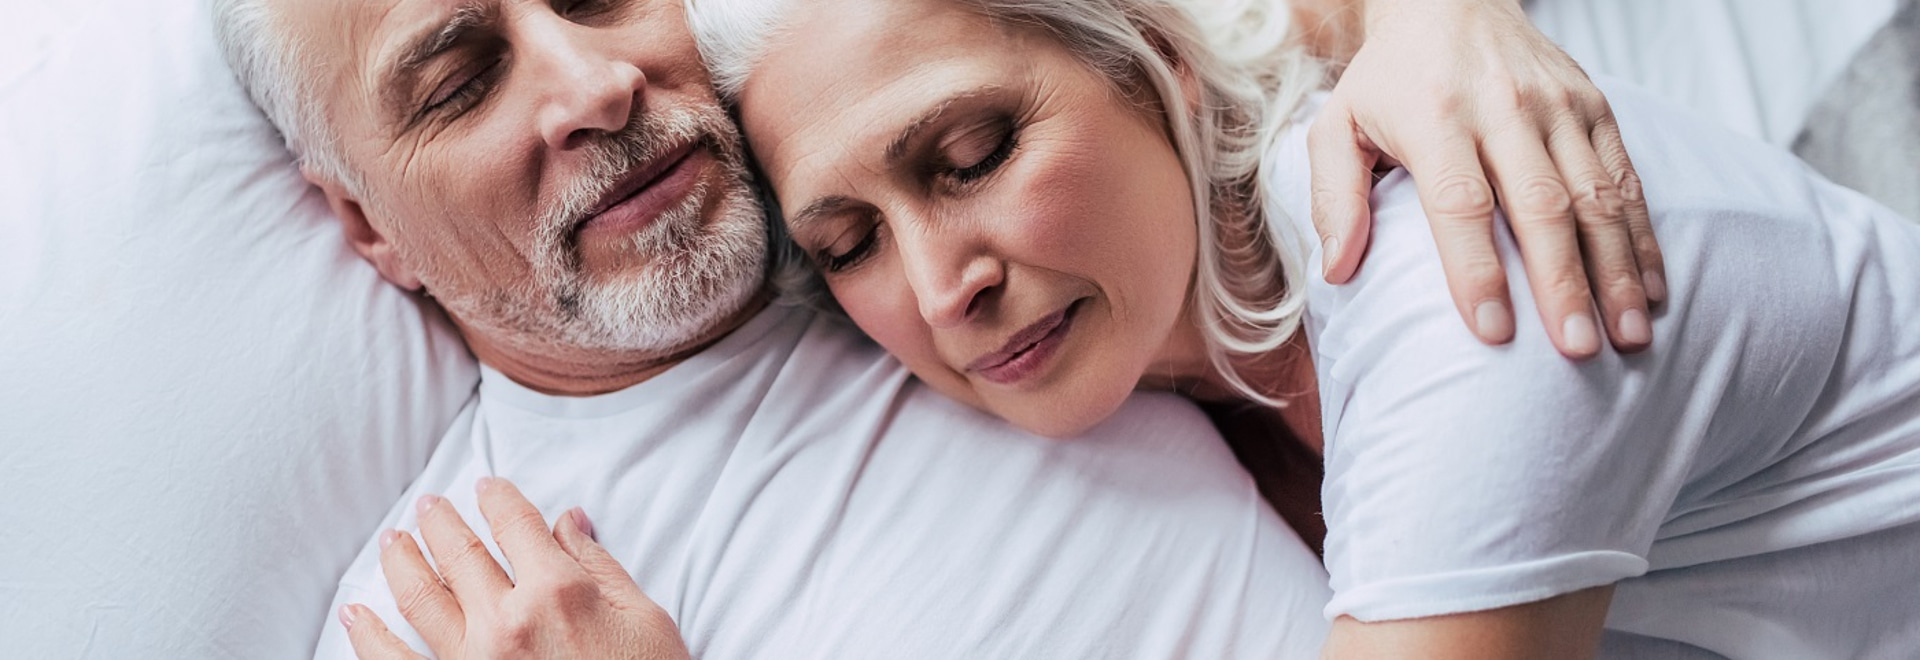 Once the correct advancement is found with the MAD, sleep apnea stops almost immediately.